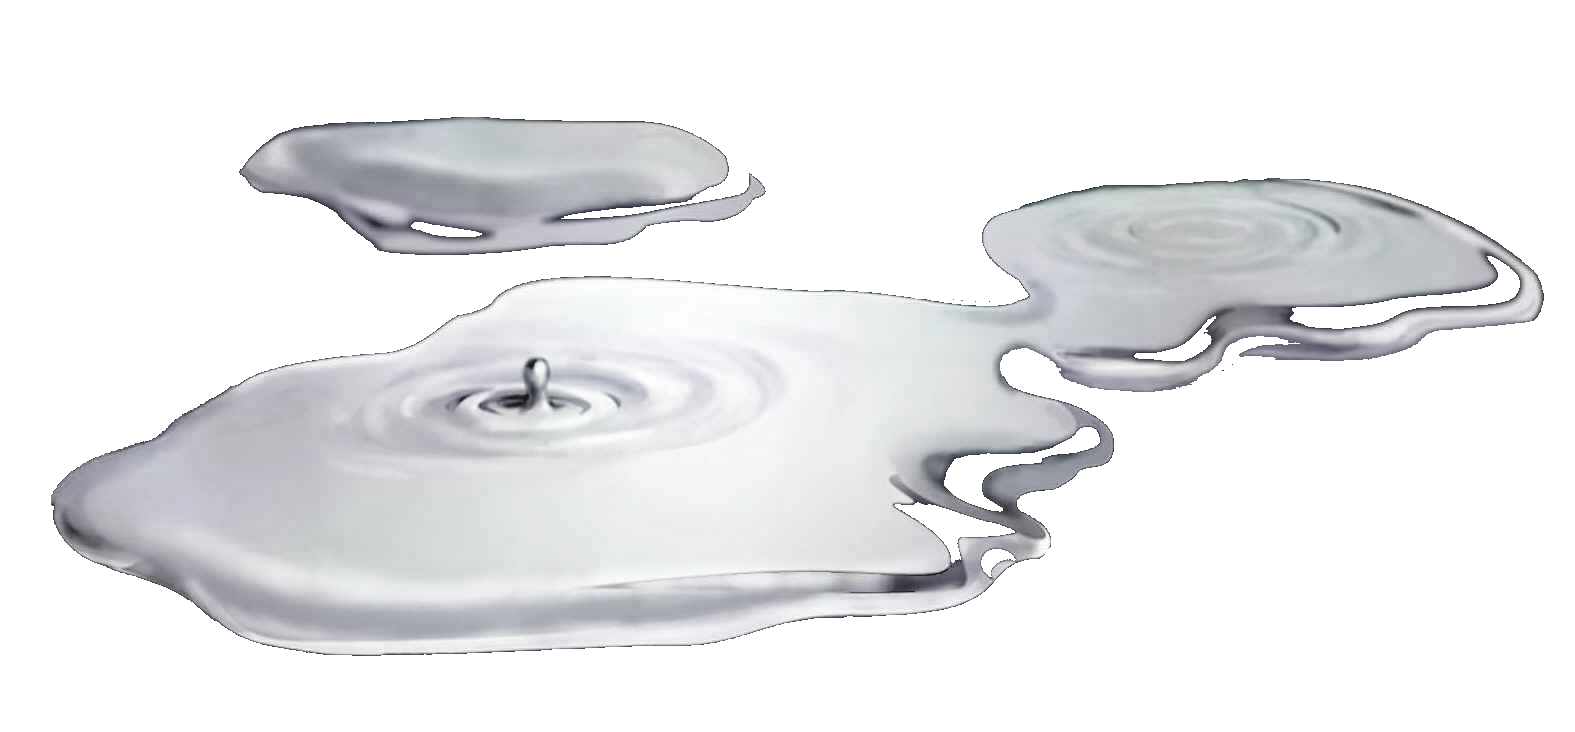 Puddle png. Water liquid clip art